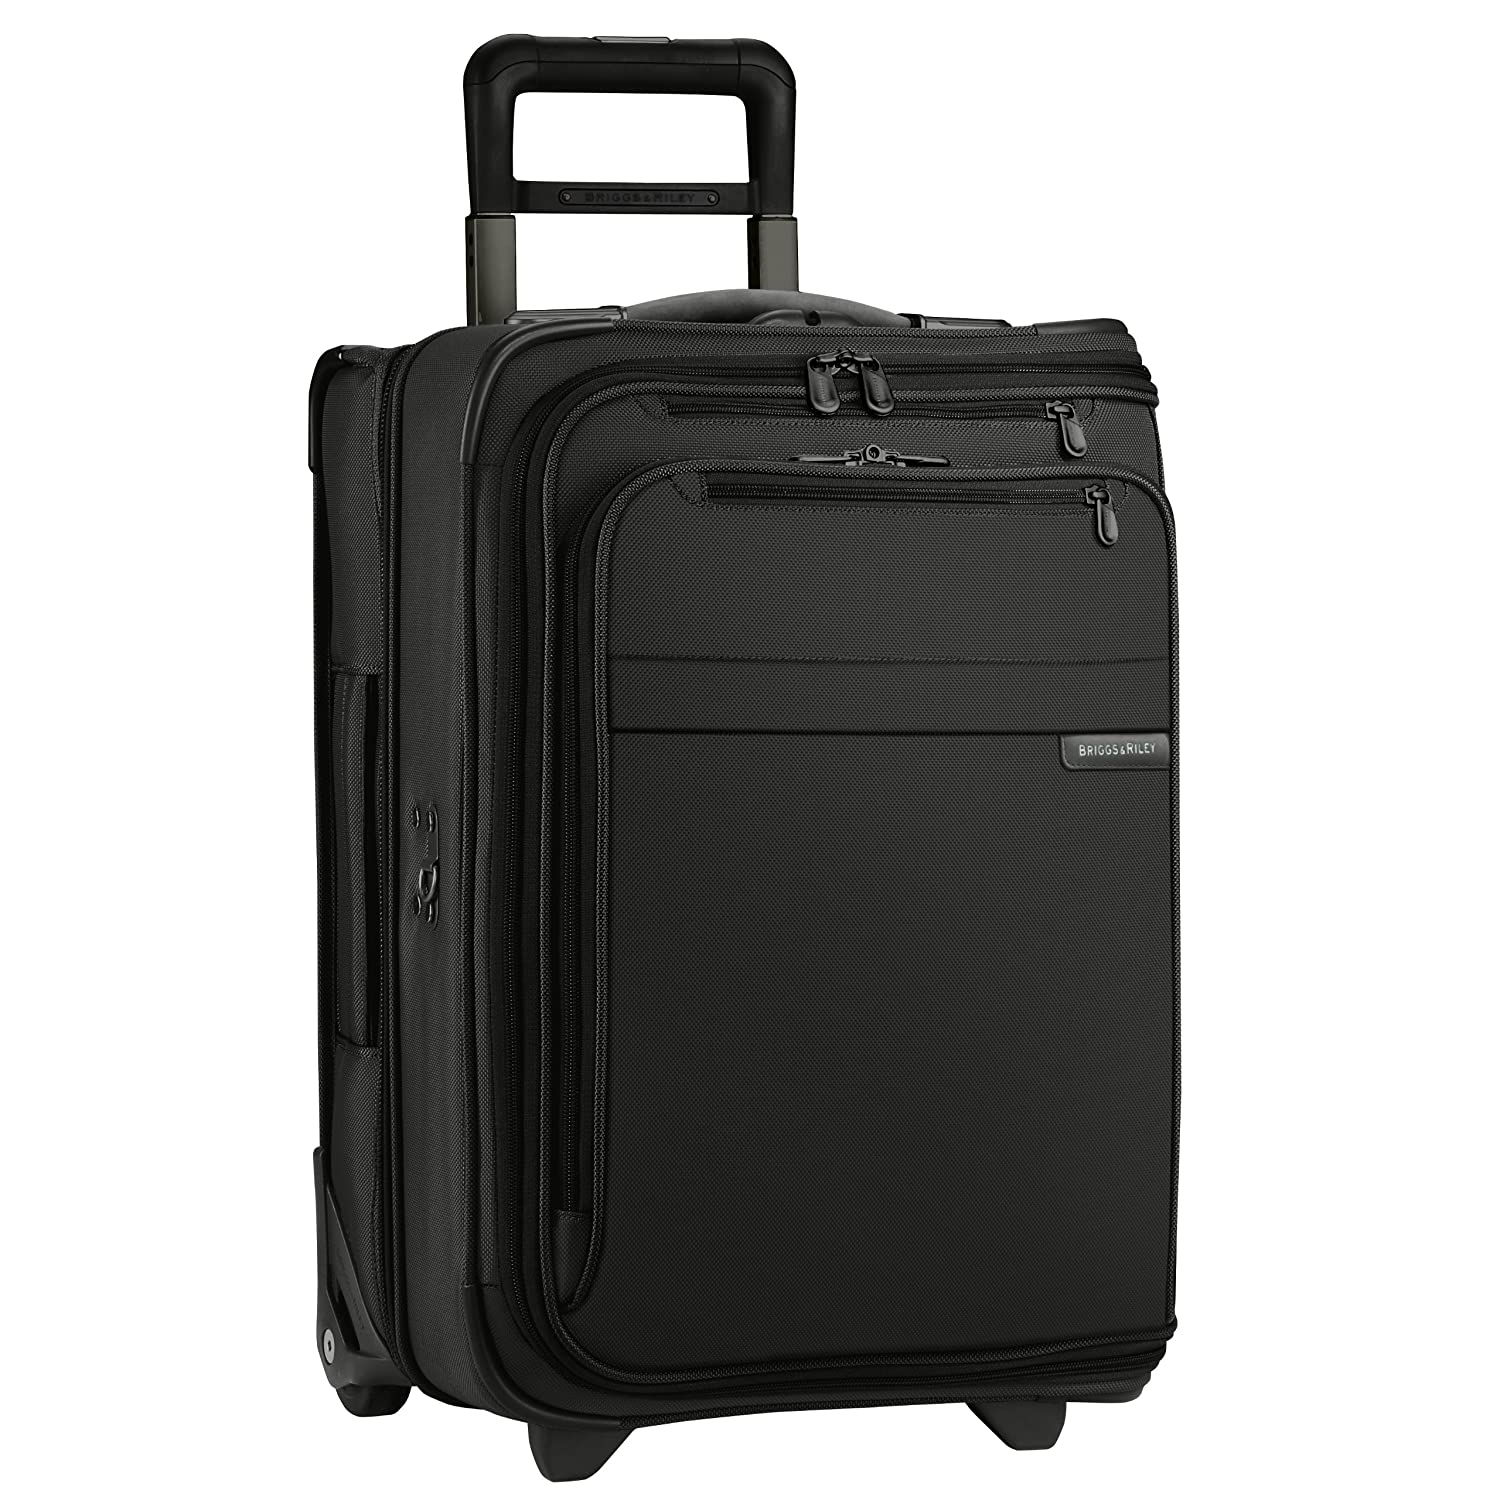 Briggs & Riley Baseline Domestic Carry-On Upright Garment Bag, Black, Small